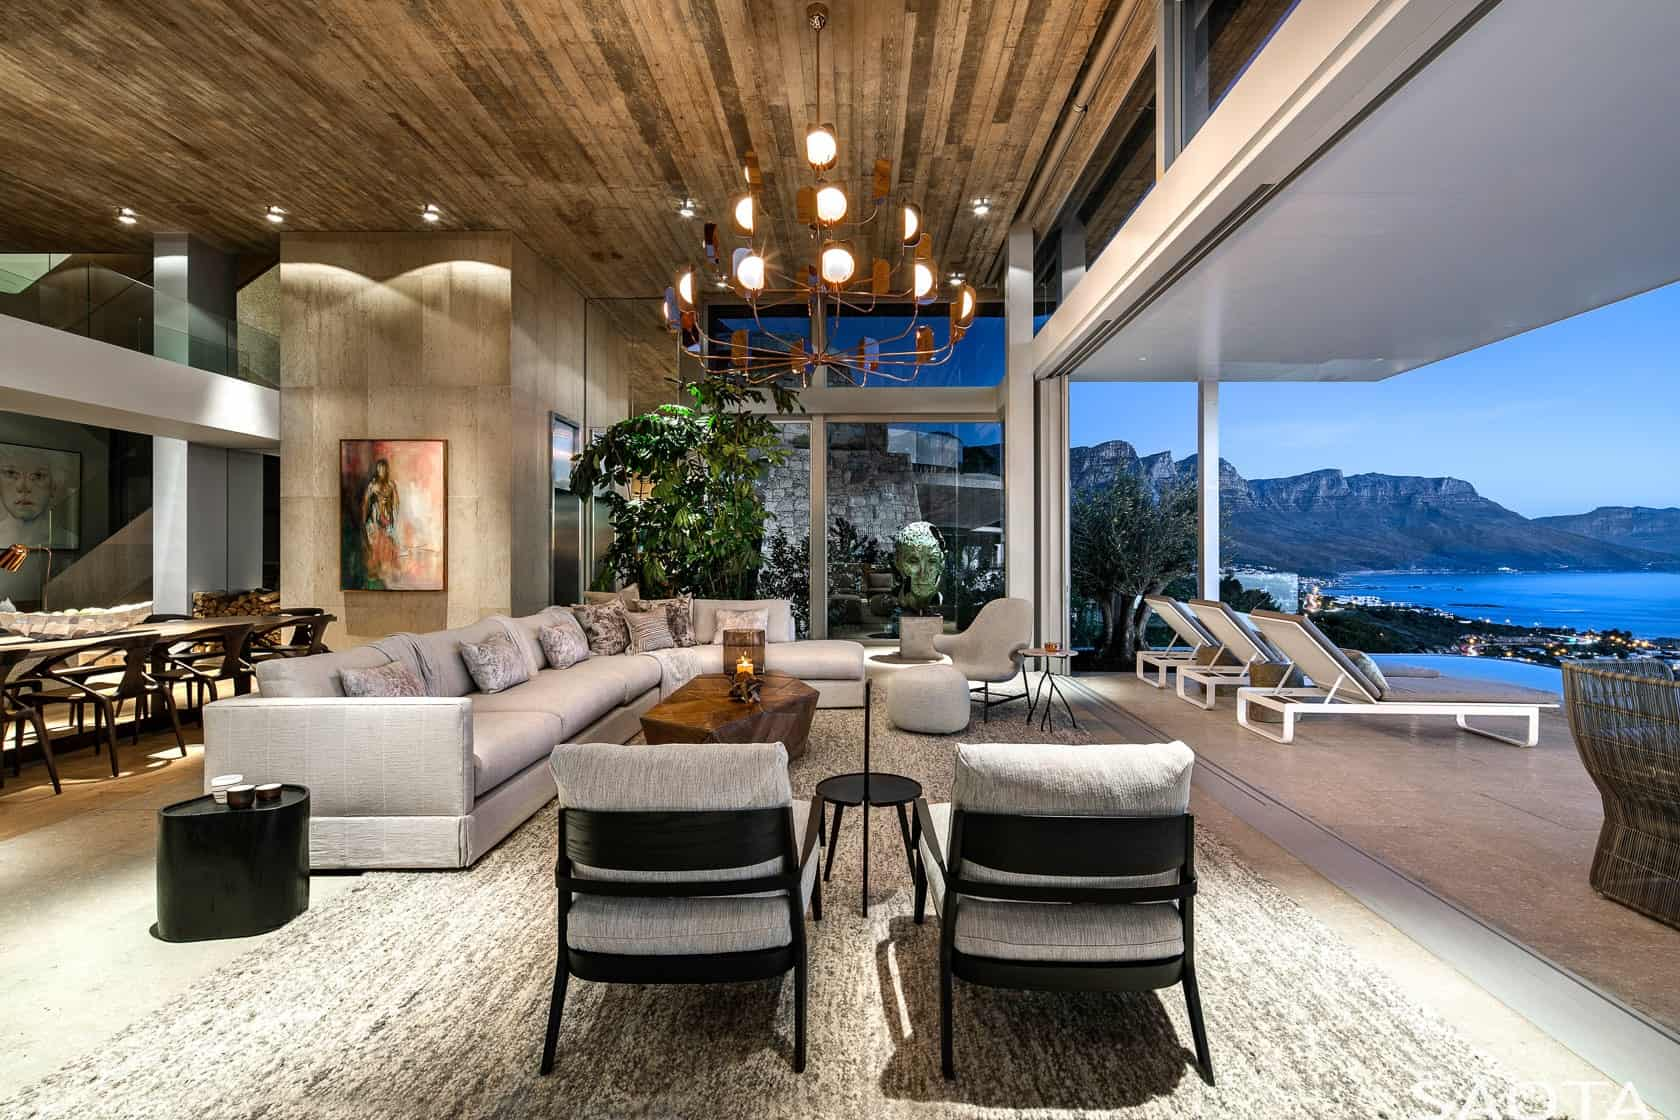 saota contemporary living room may302019 min - Get Modern Small House Design Interior  Images